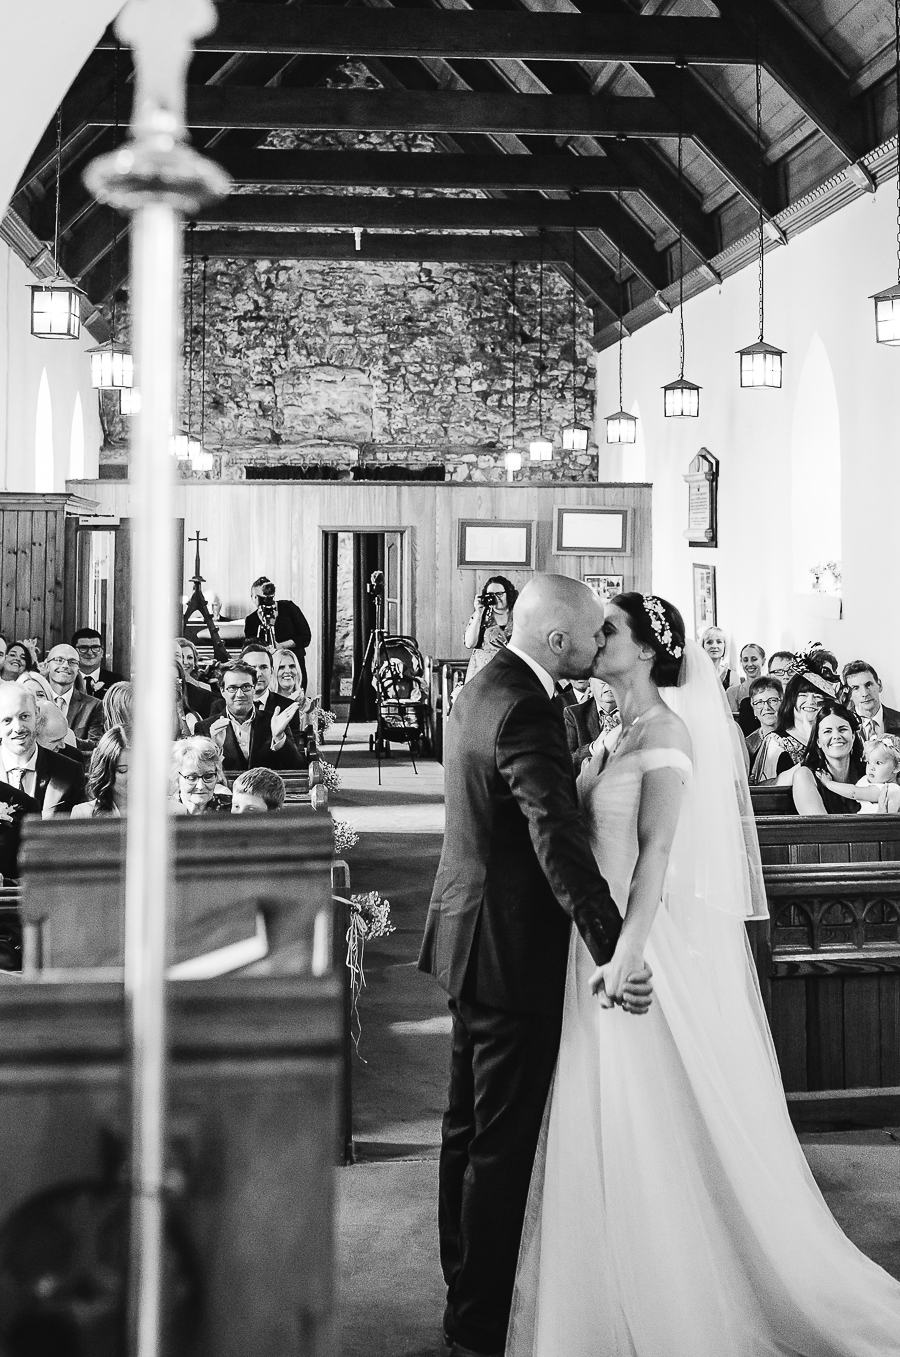 A Fairyhill Wedding - Gower, Swansea - Our Beautiful Adventure Photography - The Ceremony